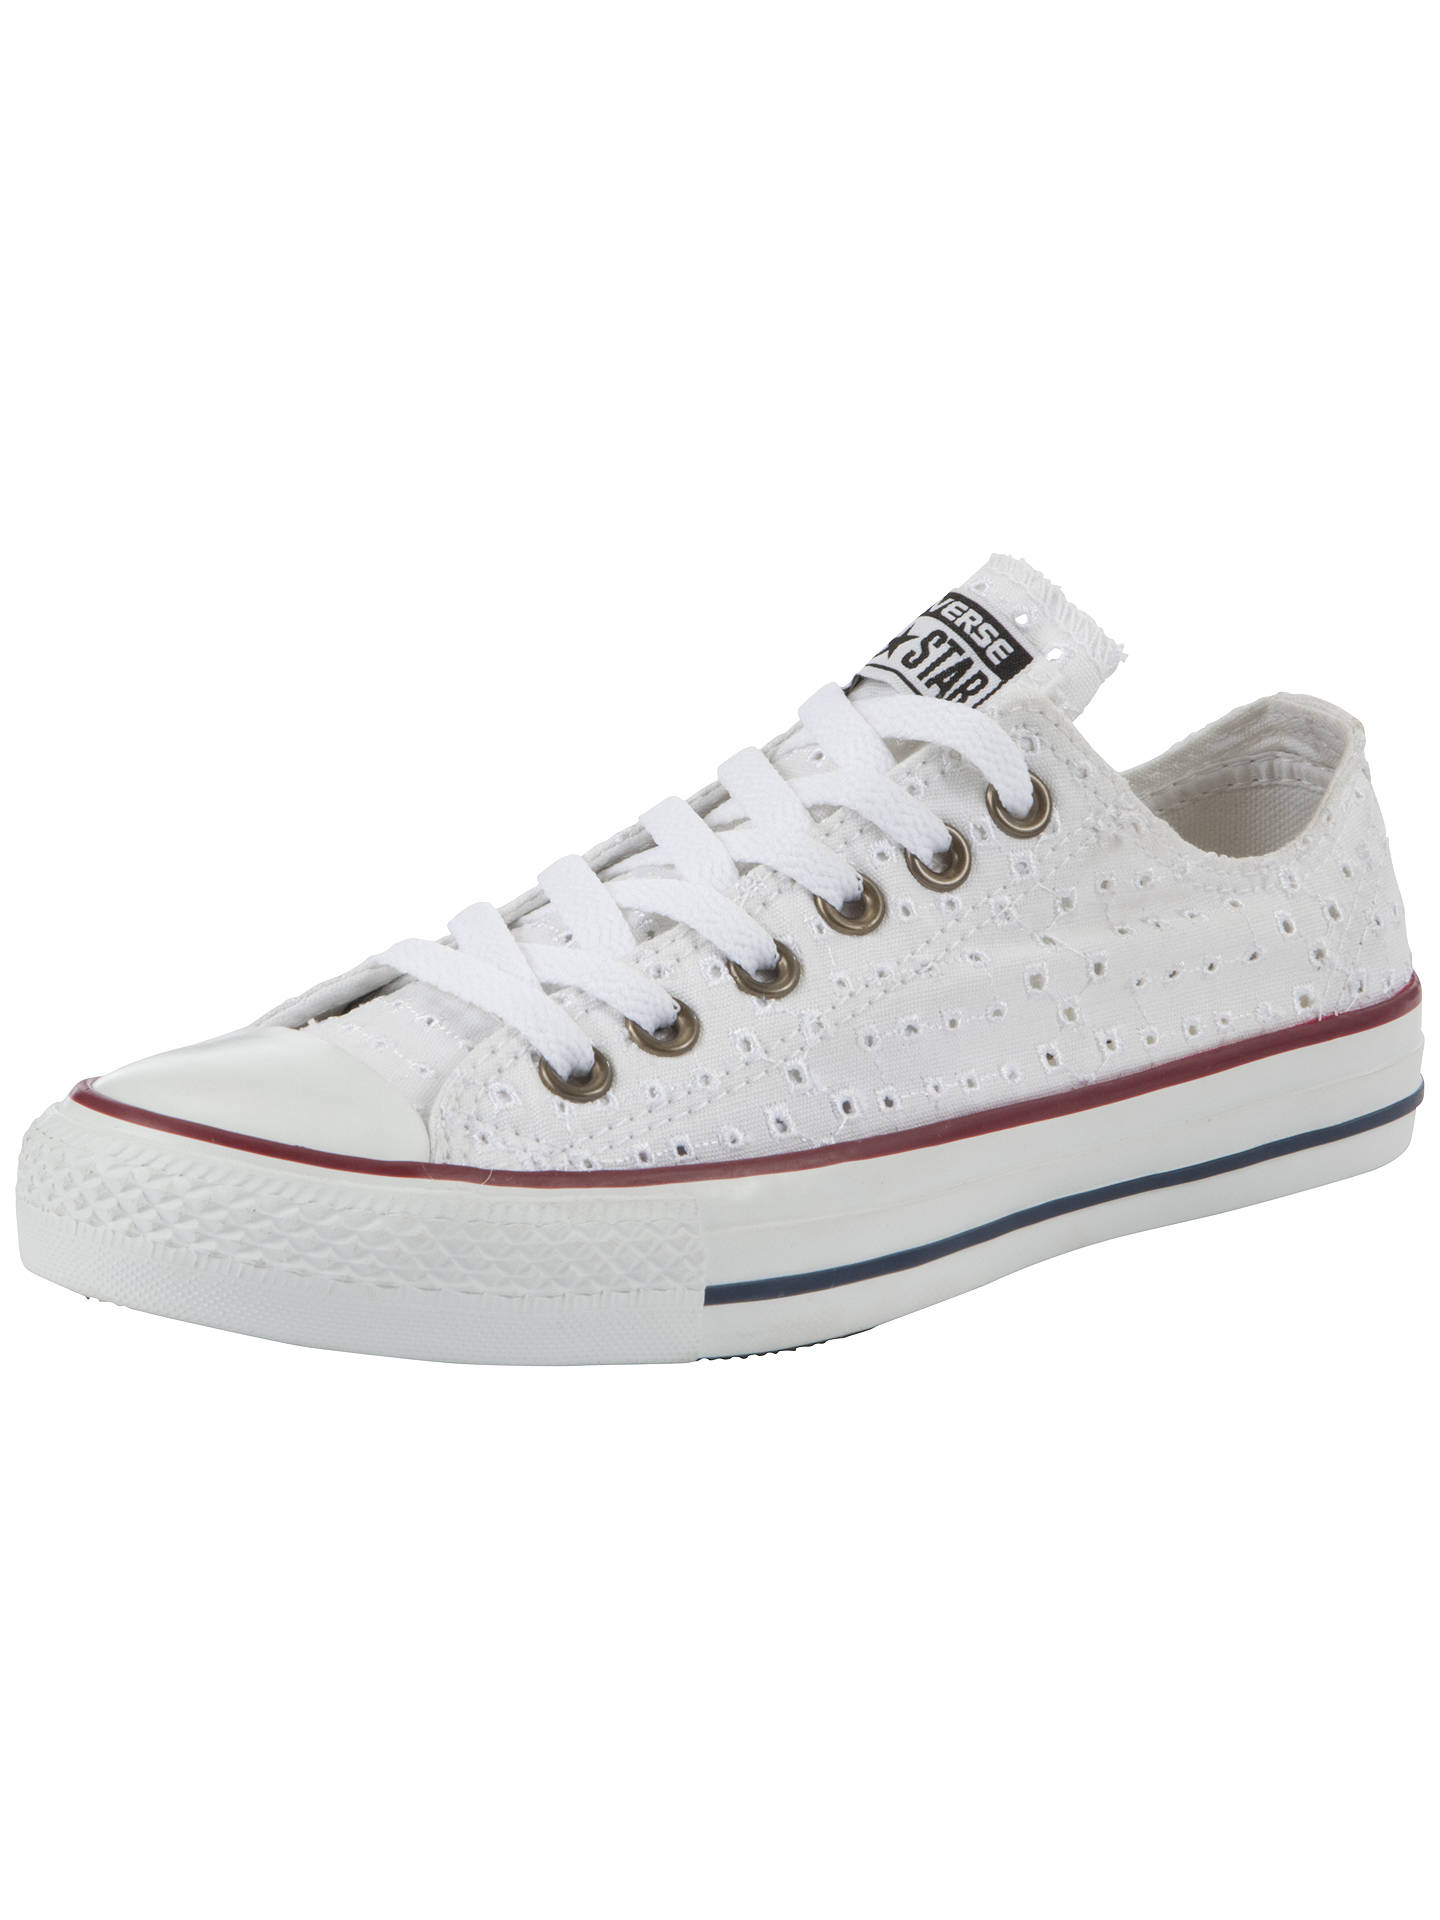 59f866bd55c BuyConverse Chuck Taylor All Star Cut-Out Canvas Low-Top Trainers, White,